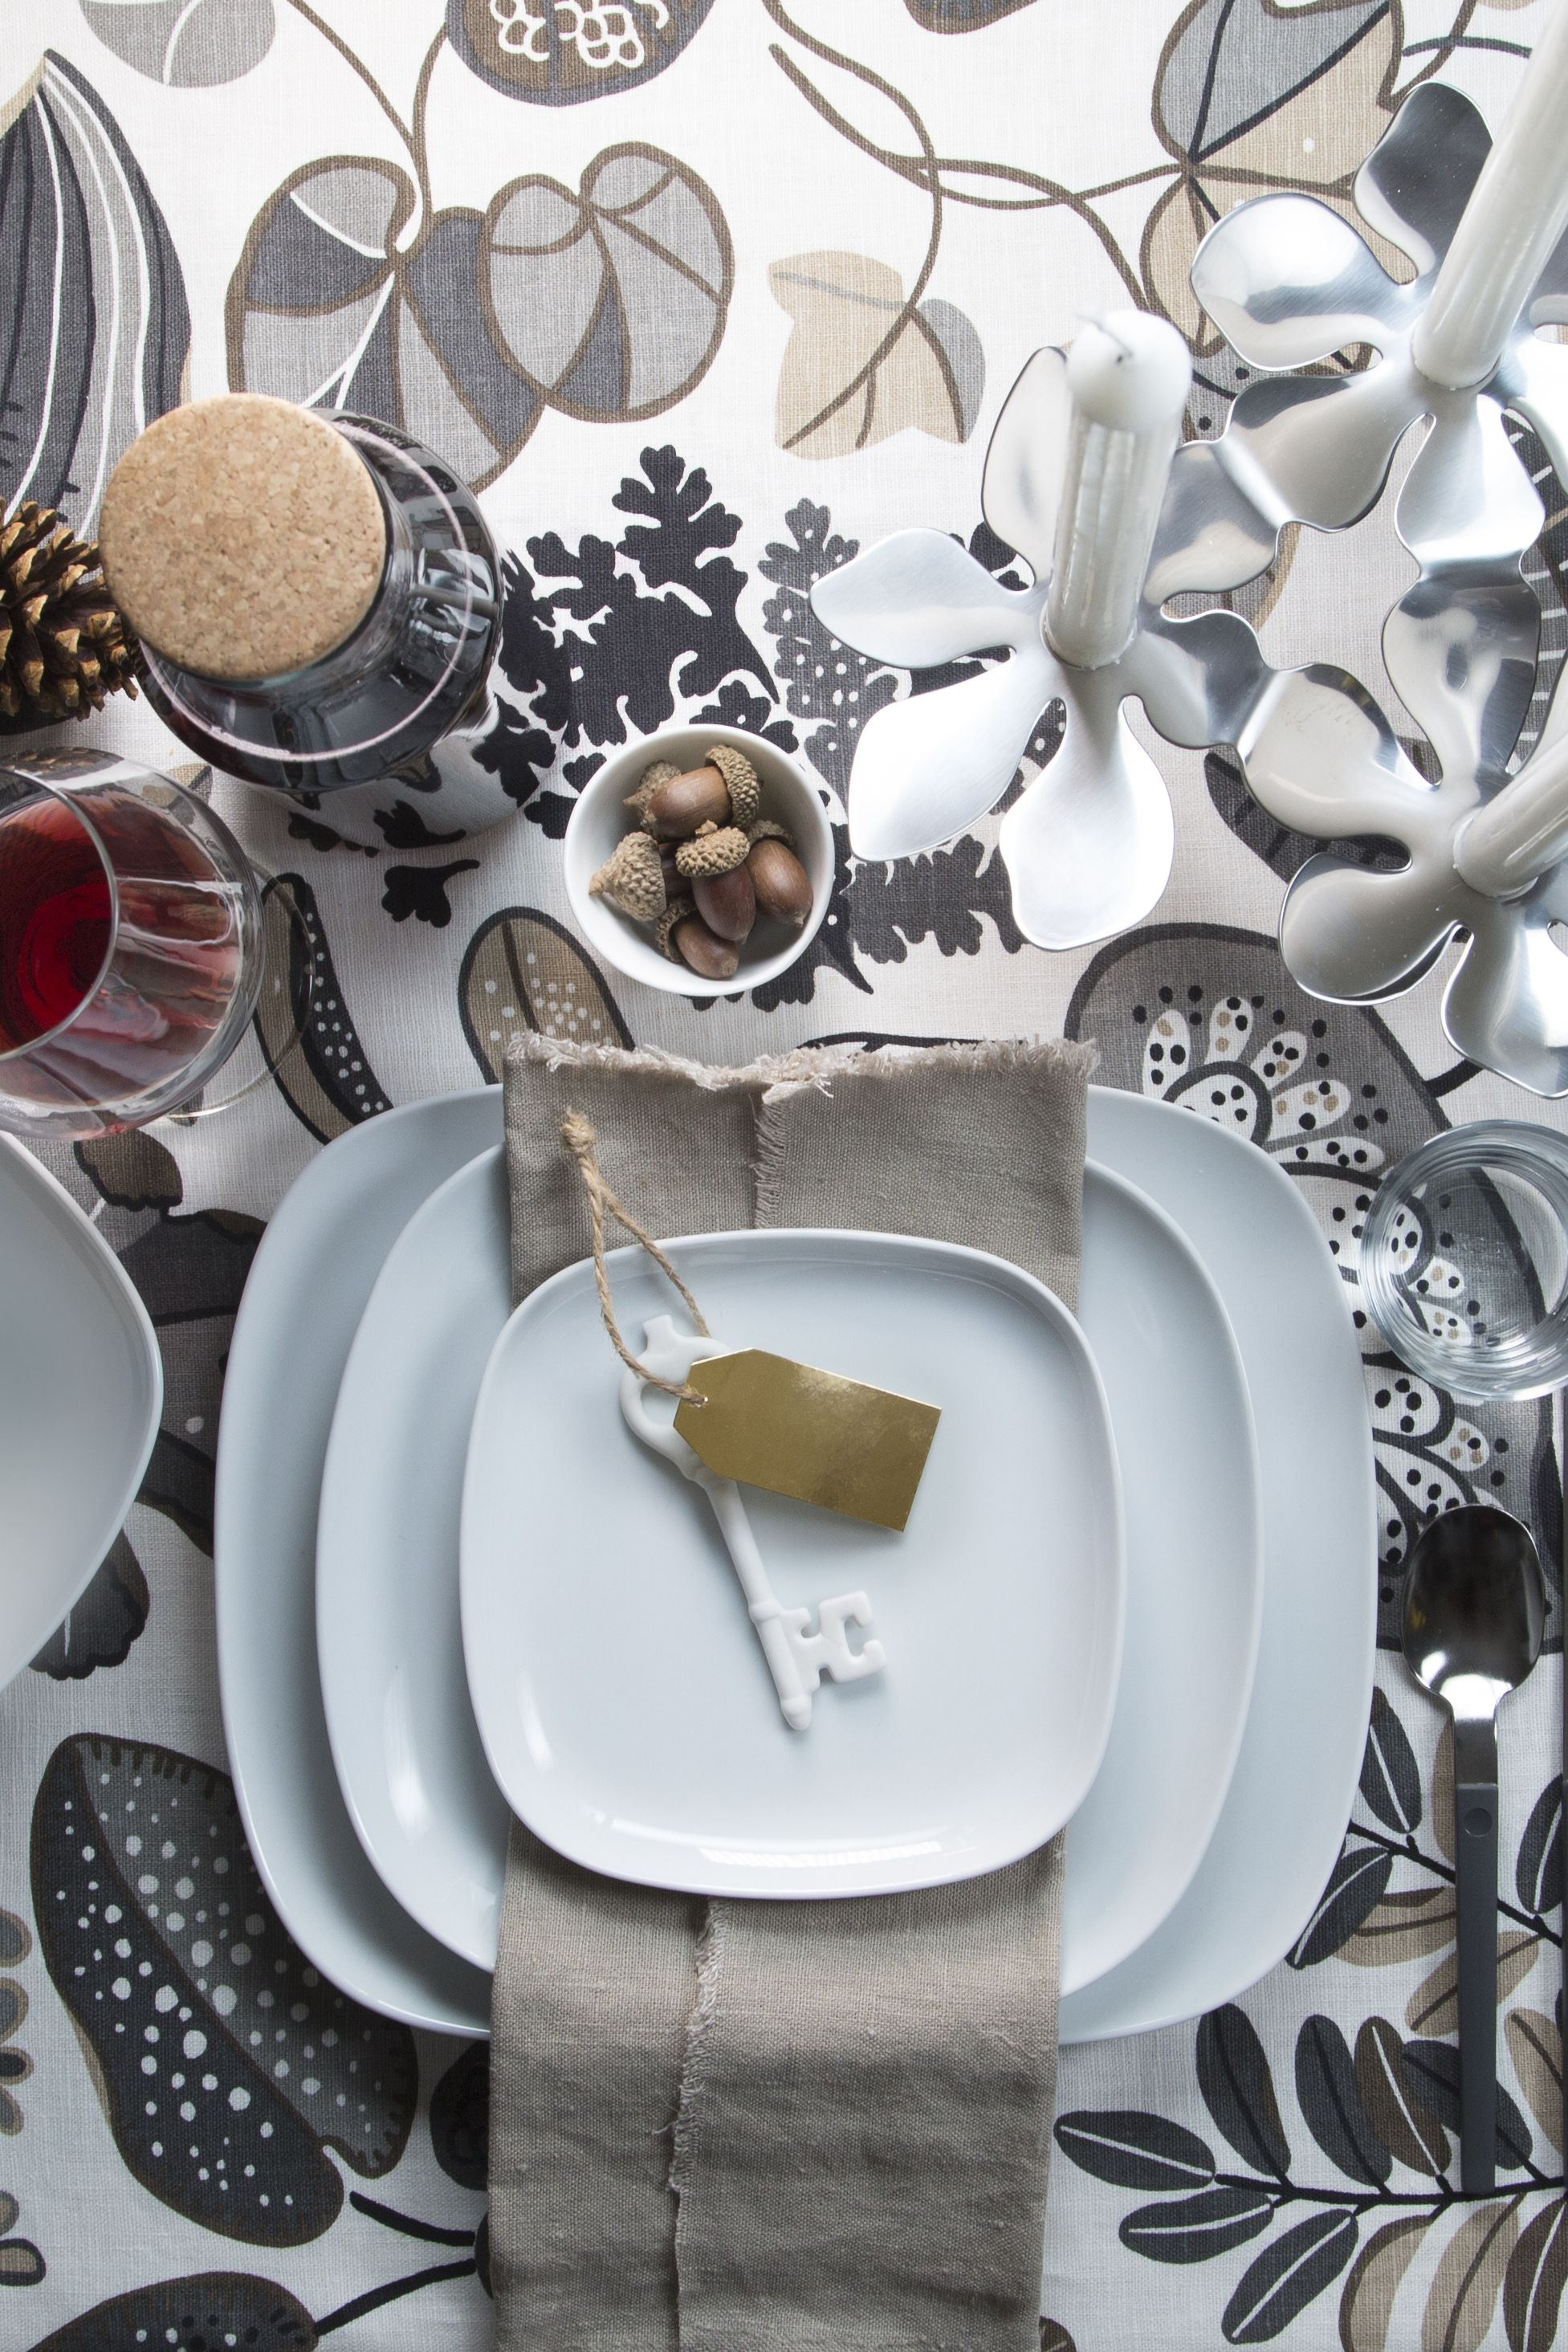 A creative table setting sets the stage for a fun holiday dinner ...